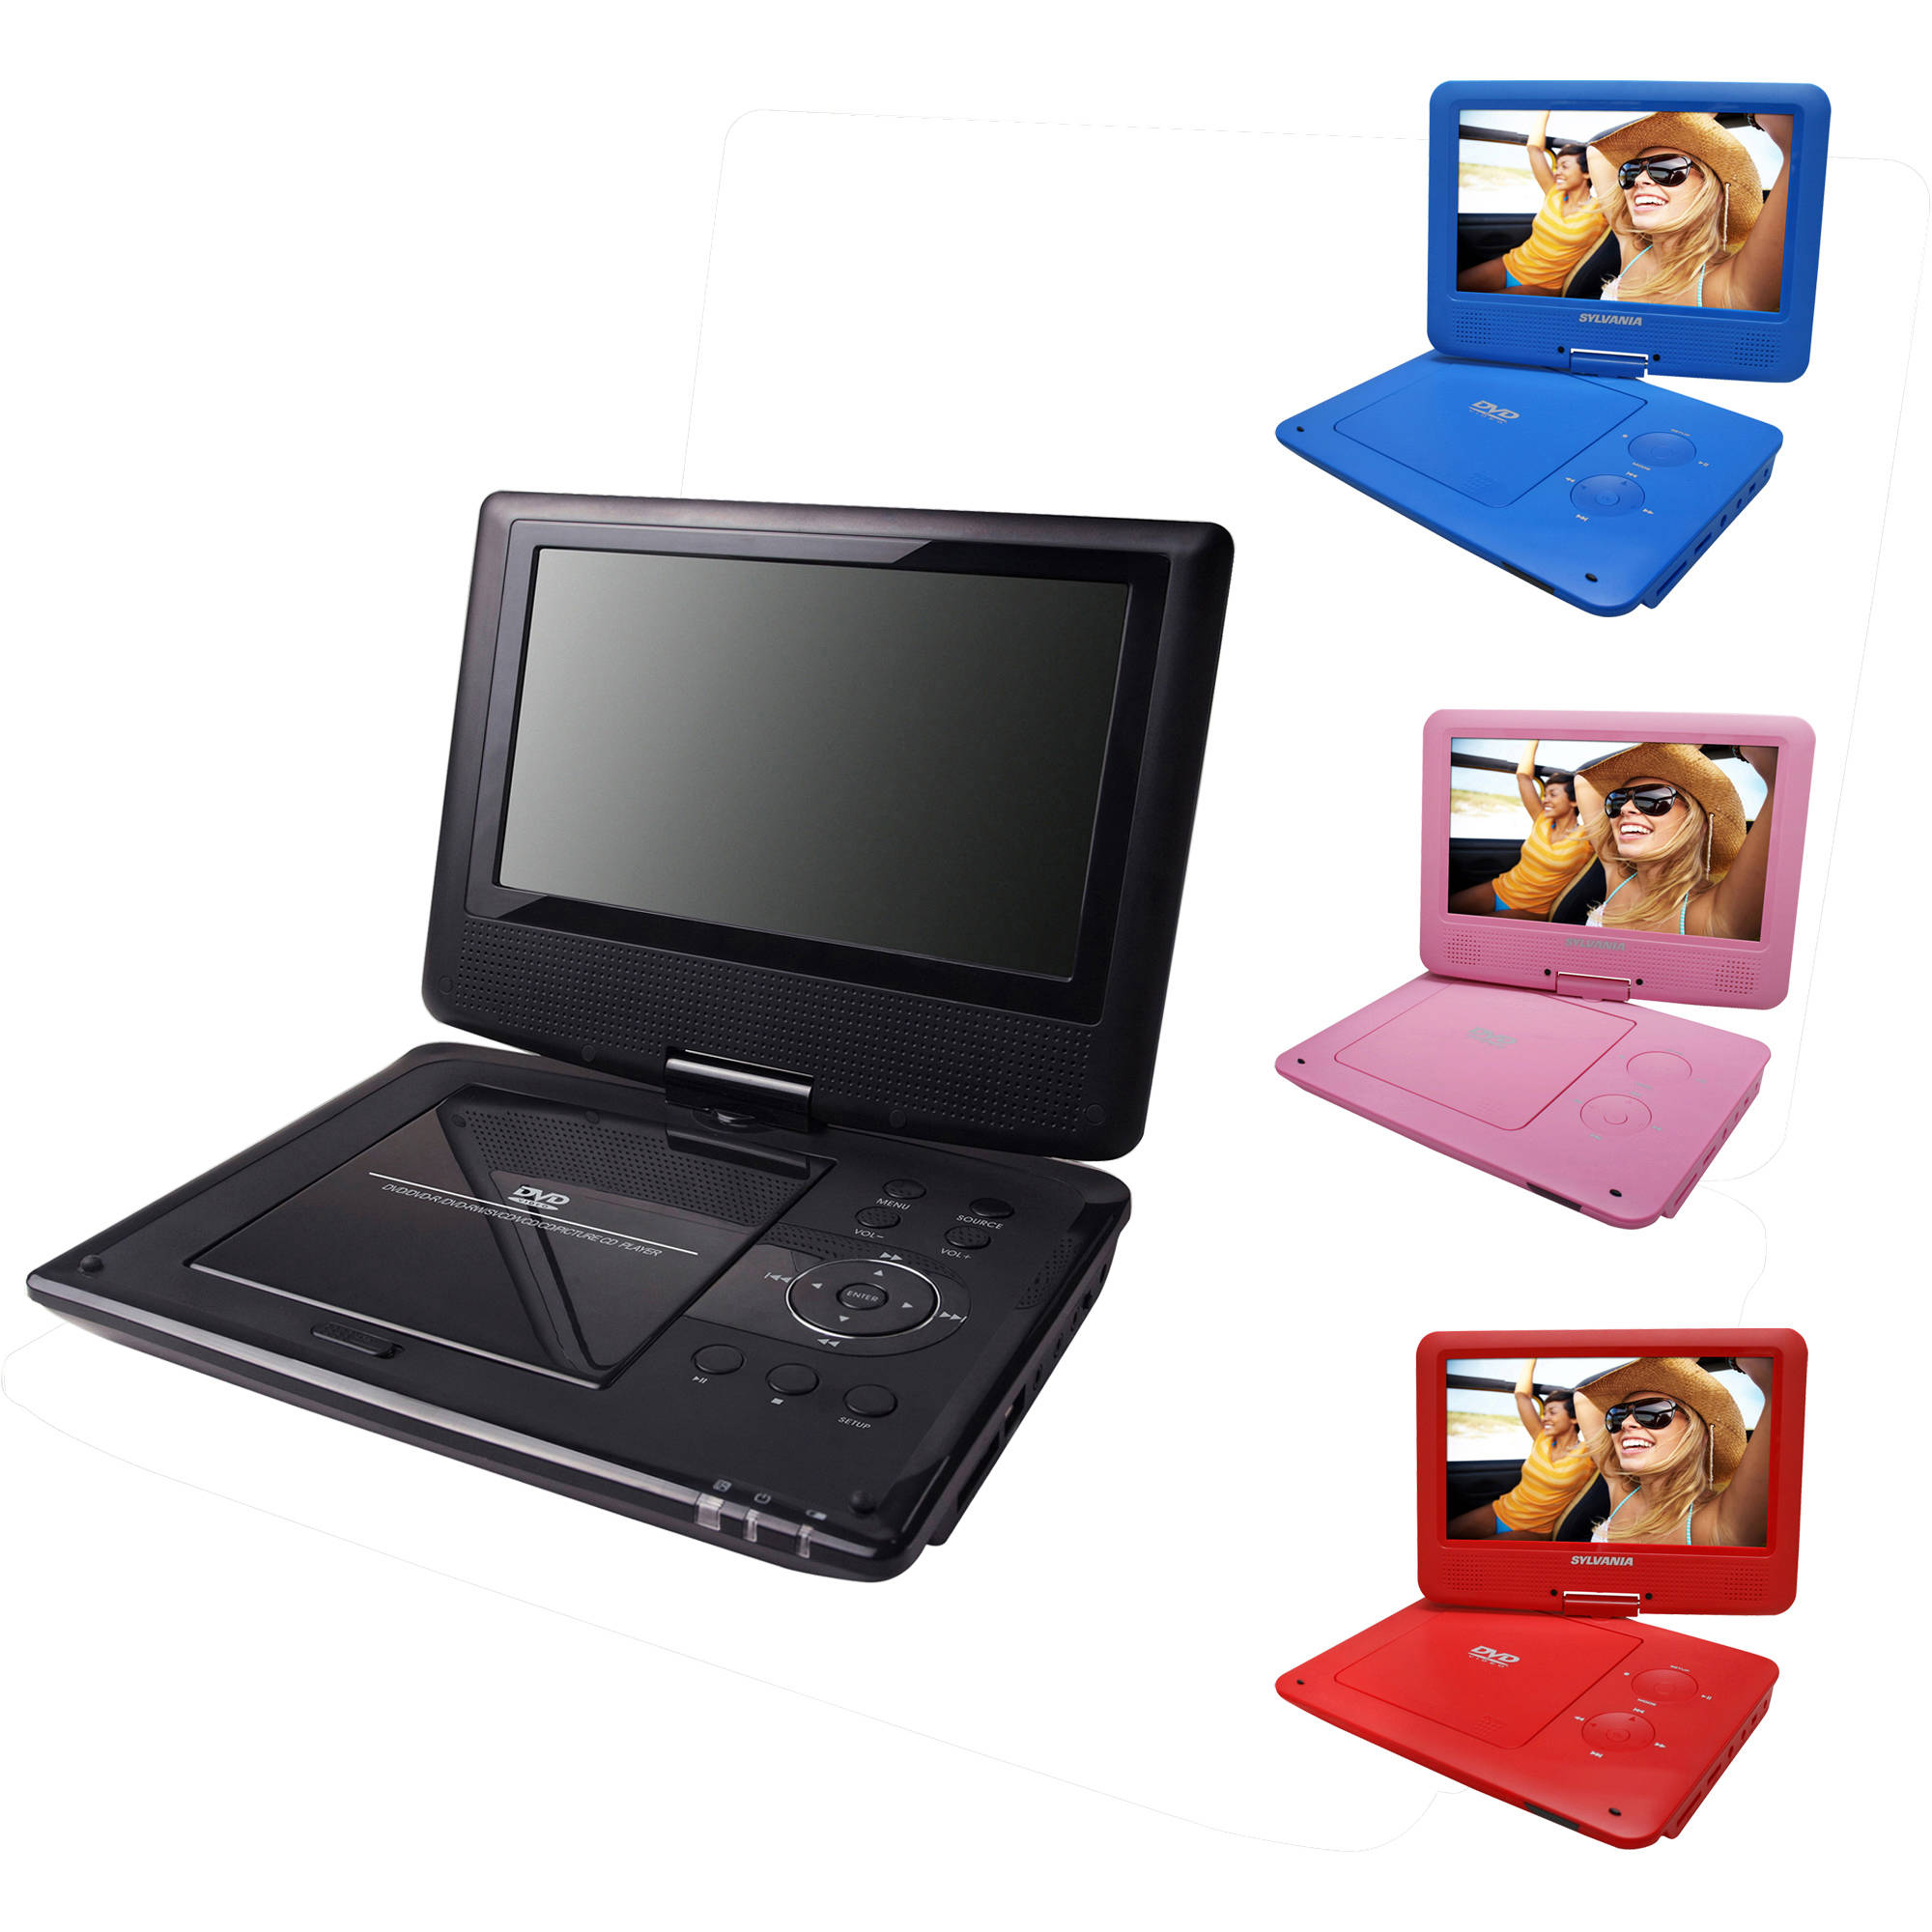 "Sylvania 9"" Portable DVD Player w/ Swivel Screen & 5hr Battery, SDVD9020"